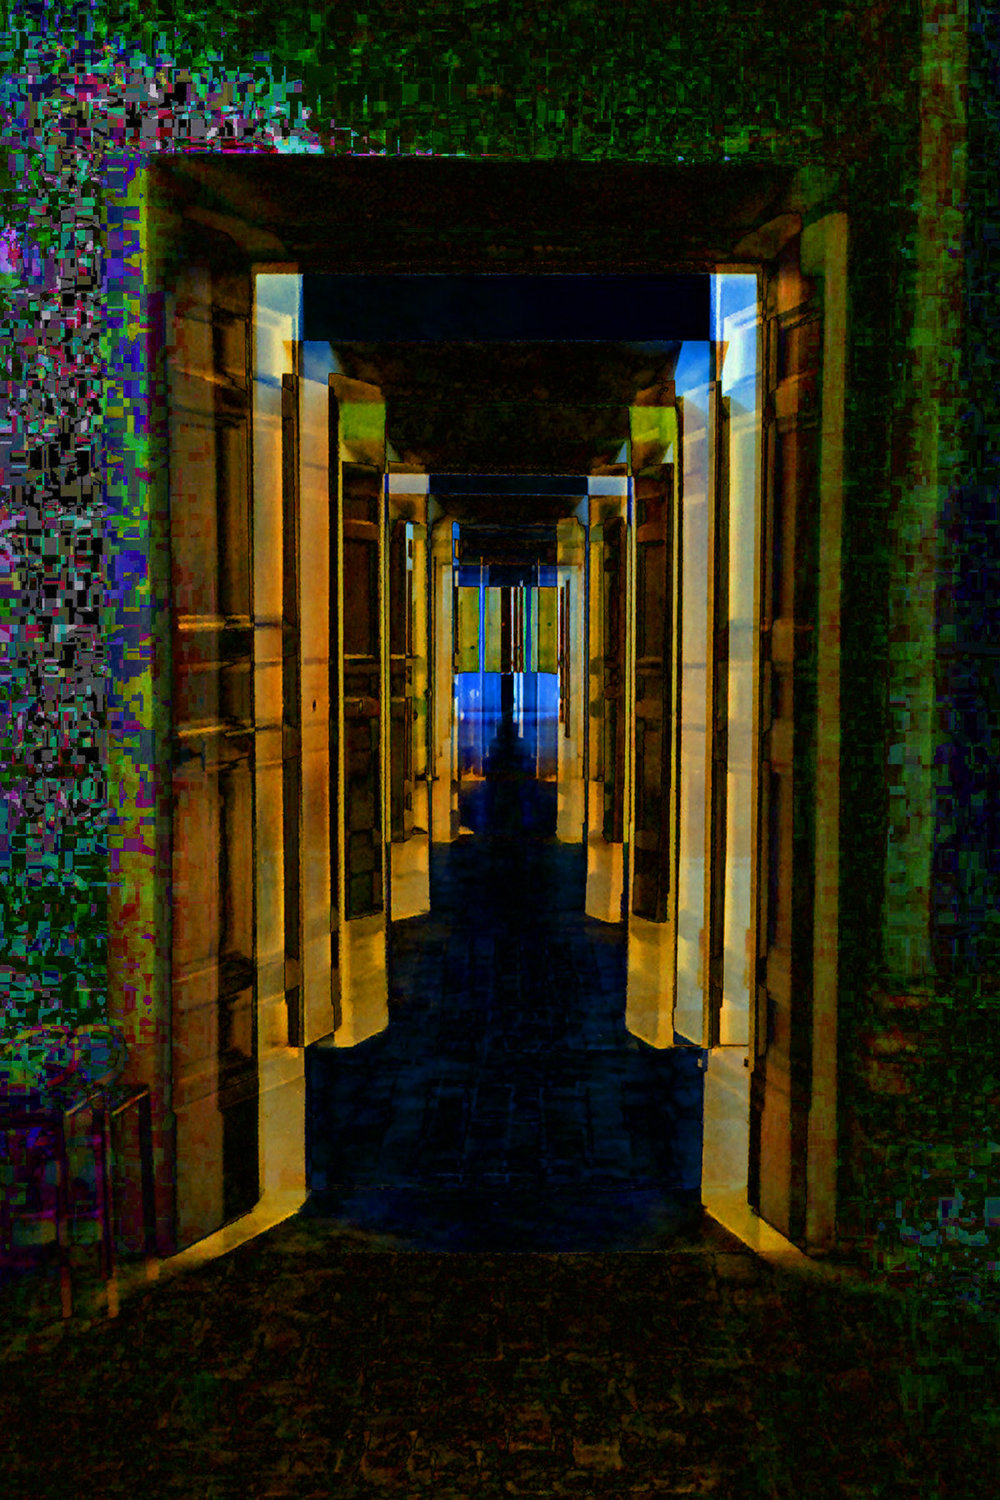 Wally Gilbert_Doors to Nowhere 30x20 6x4 300dpi.jpg